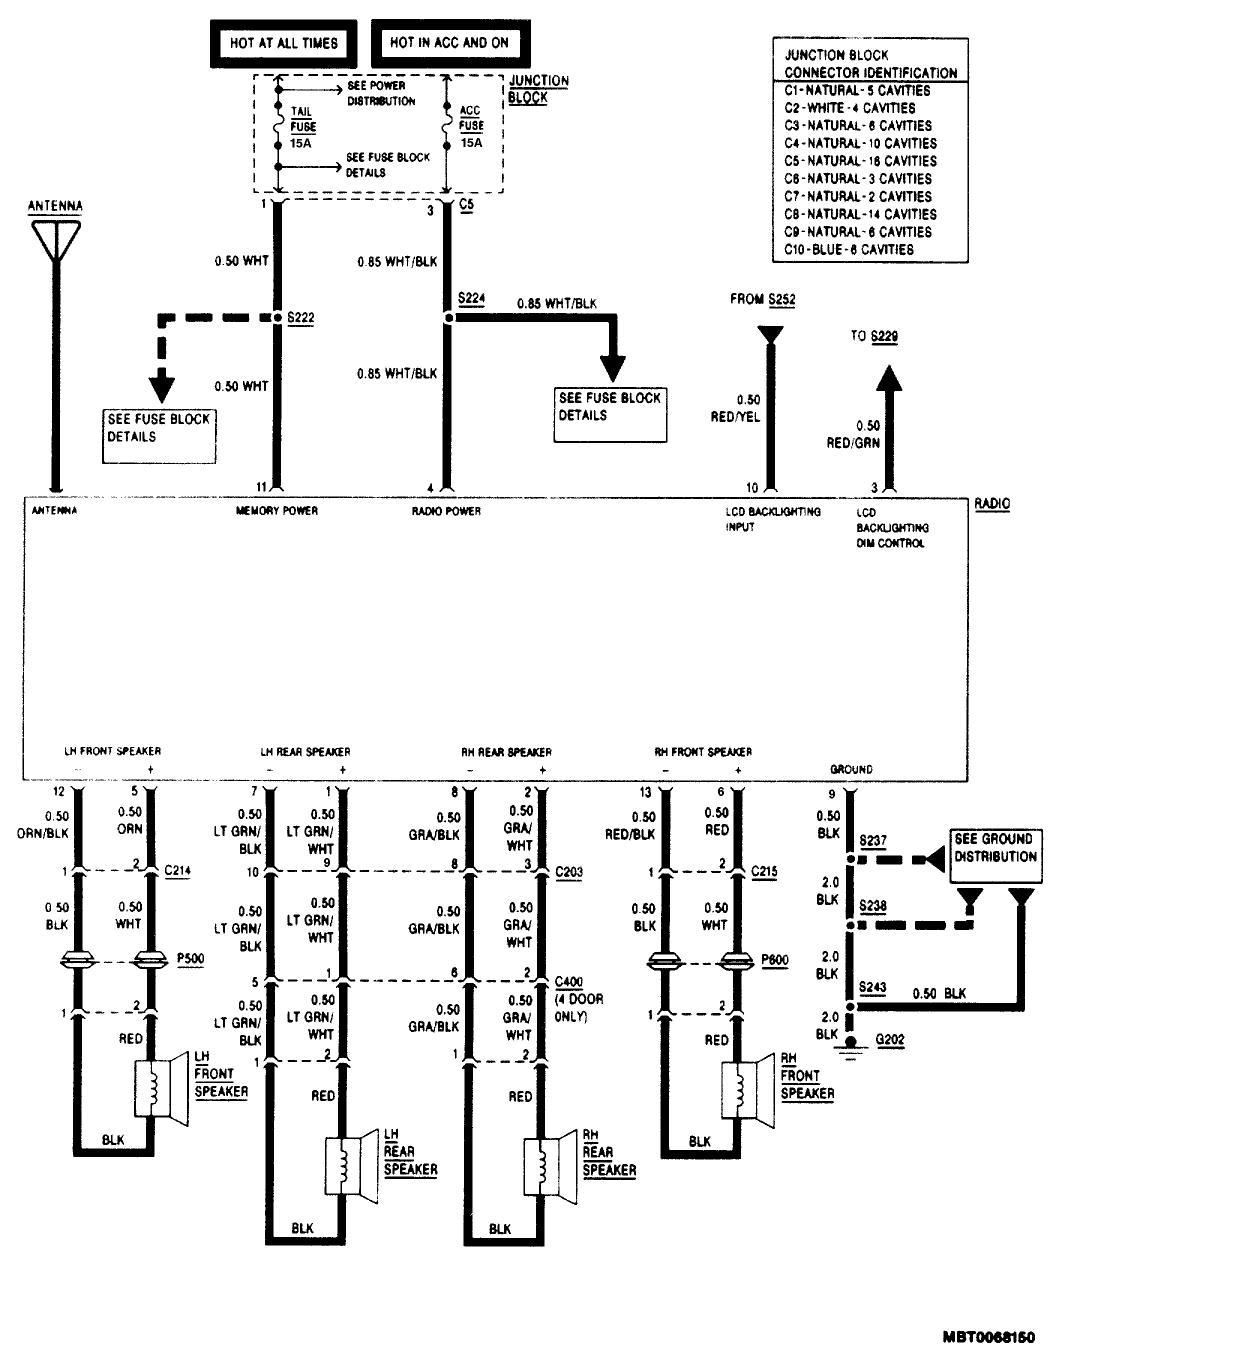 Radio Wiring Diagram Chevy Metro Layout Diagrams 2008 Hhr What Is The Color Code For A In 1996 Geo Ford F 150